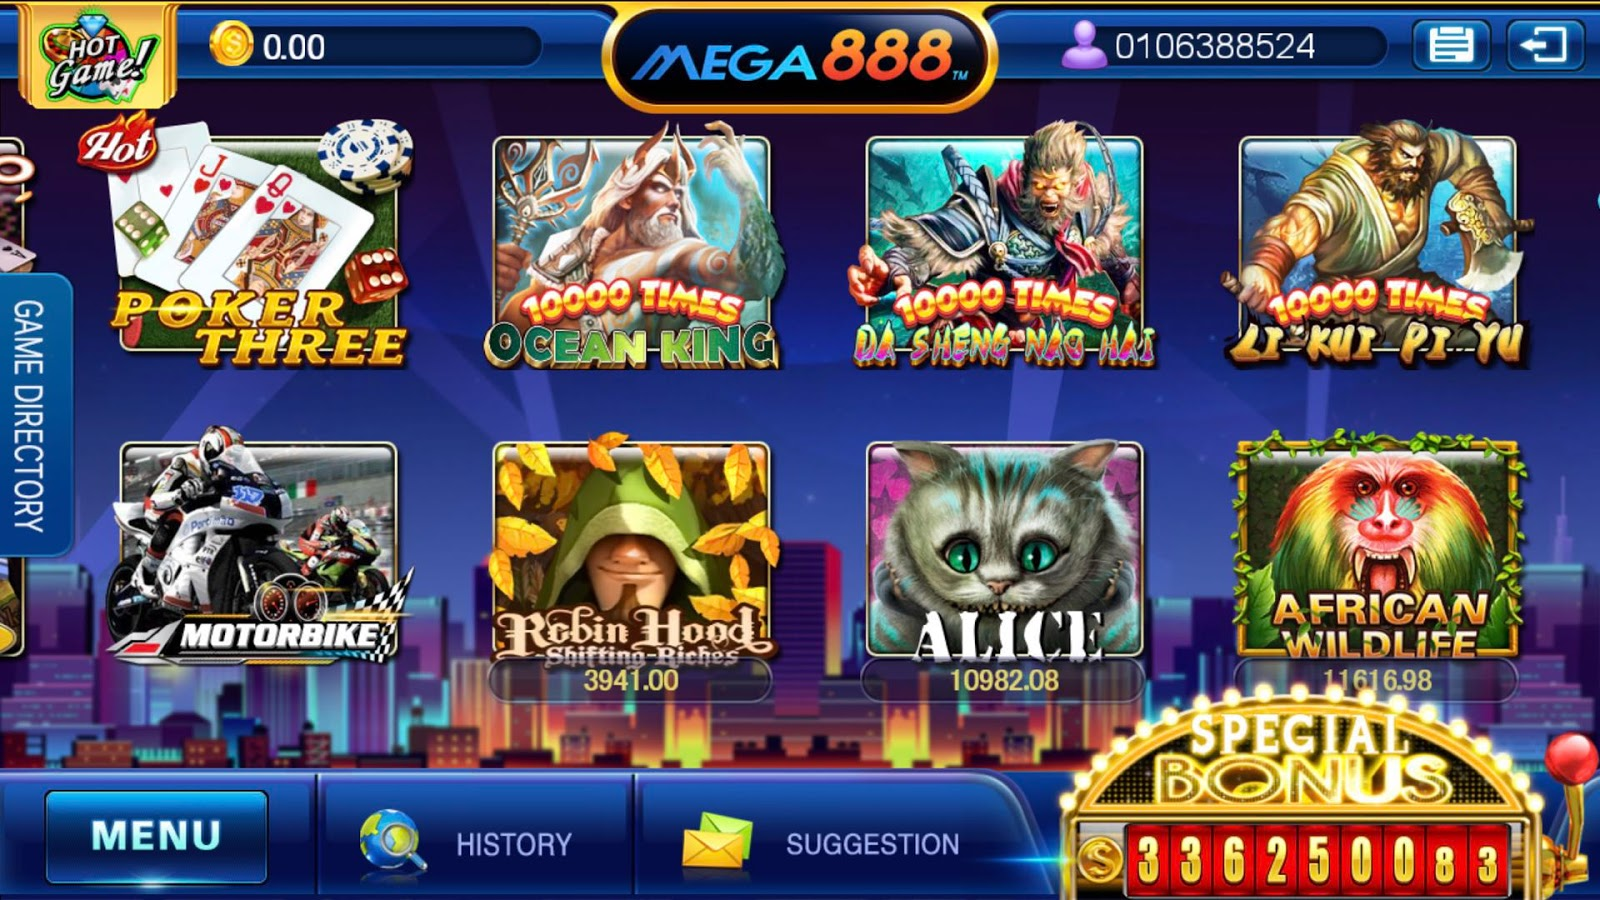 MEGA888 online slot game casino Malaysia by nicocuppen